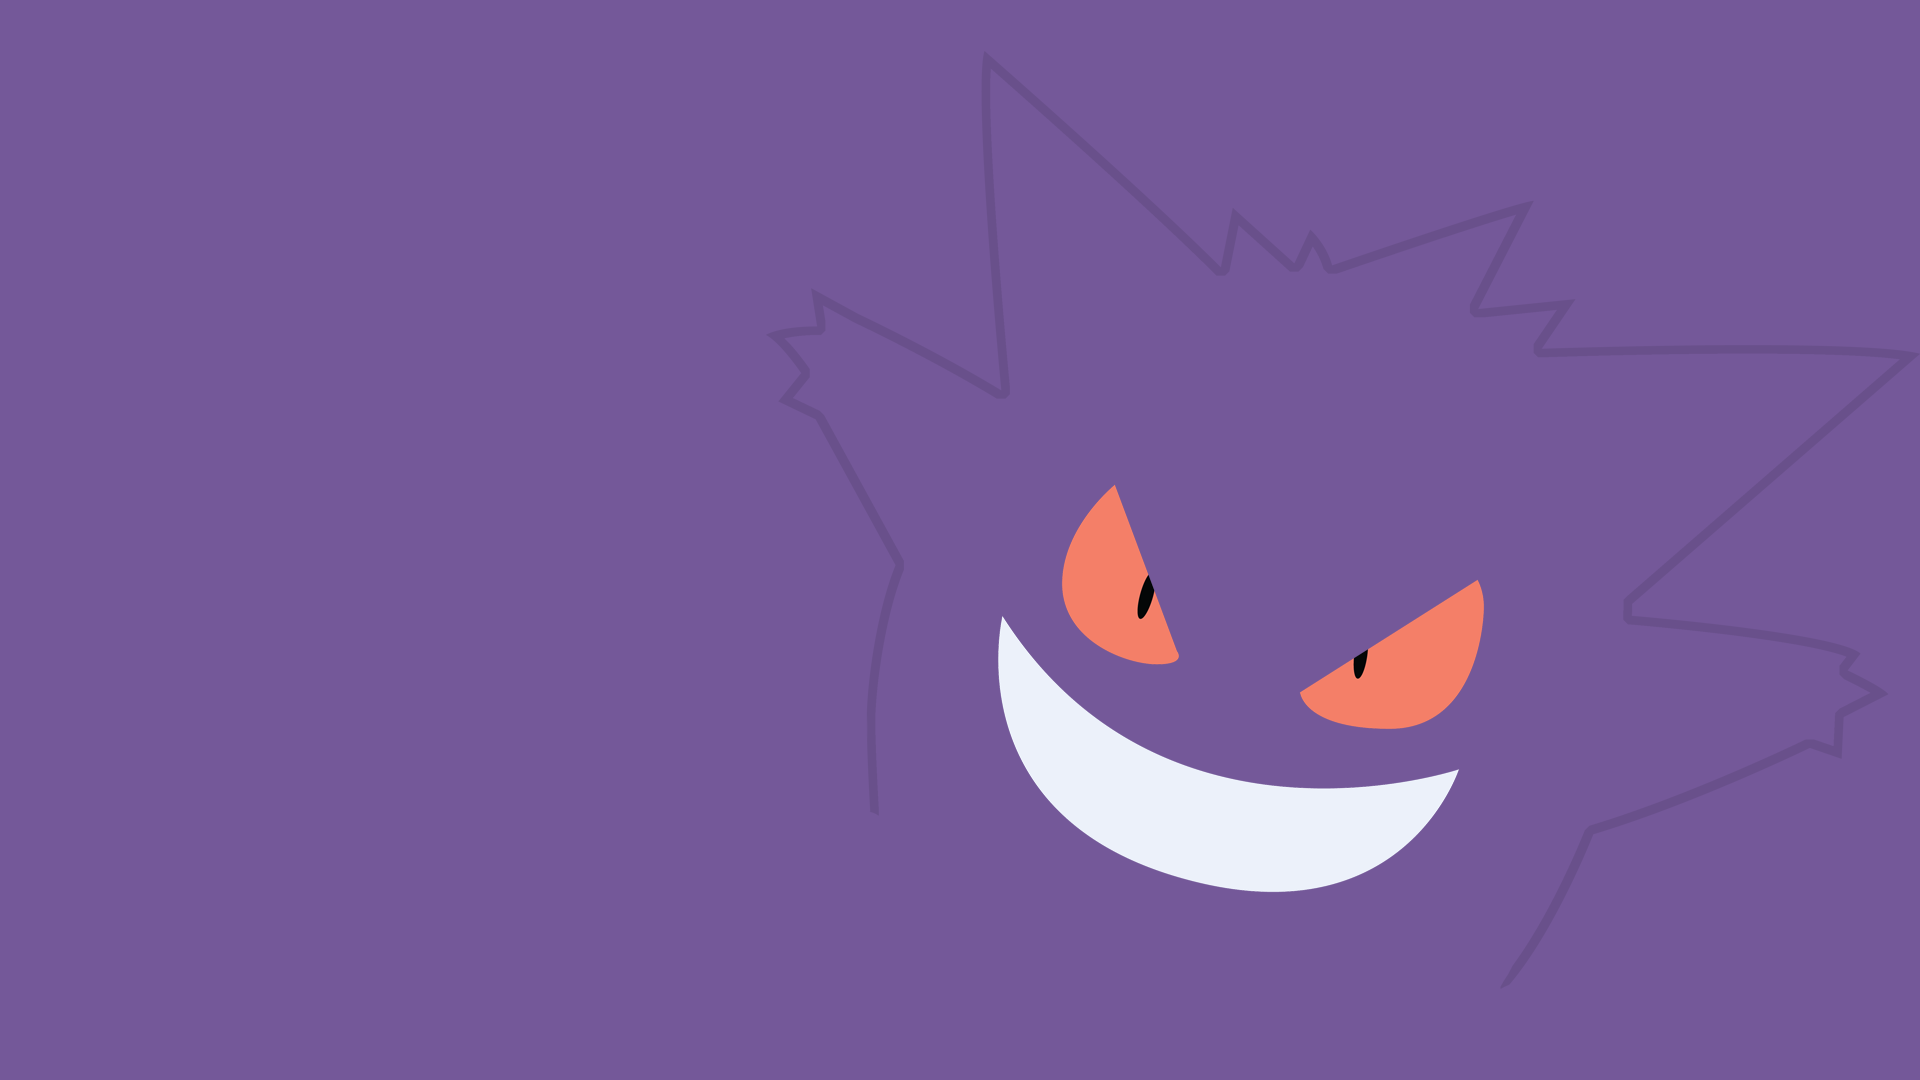 Gengar Wallpaper Hd Pictures to Pin on Pinterest - PinsDaddy